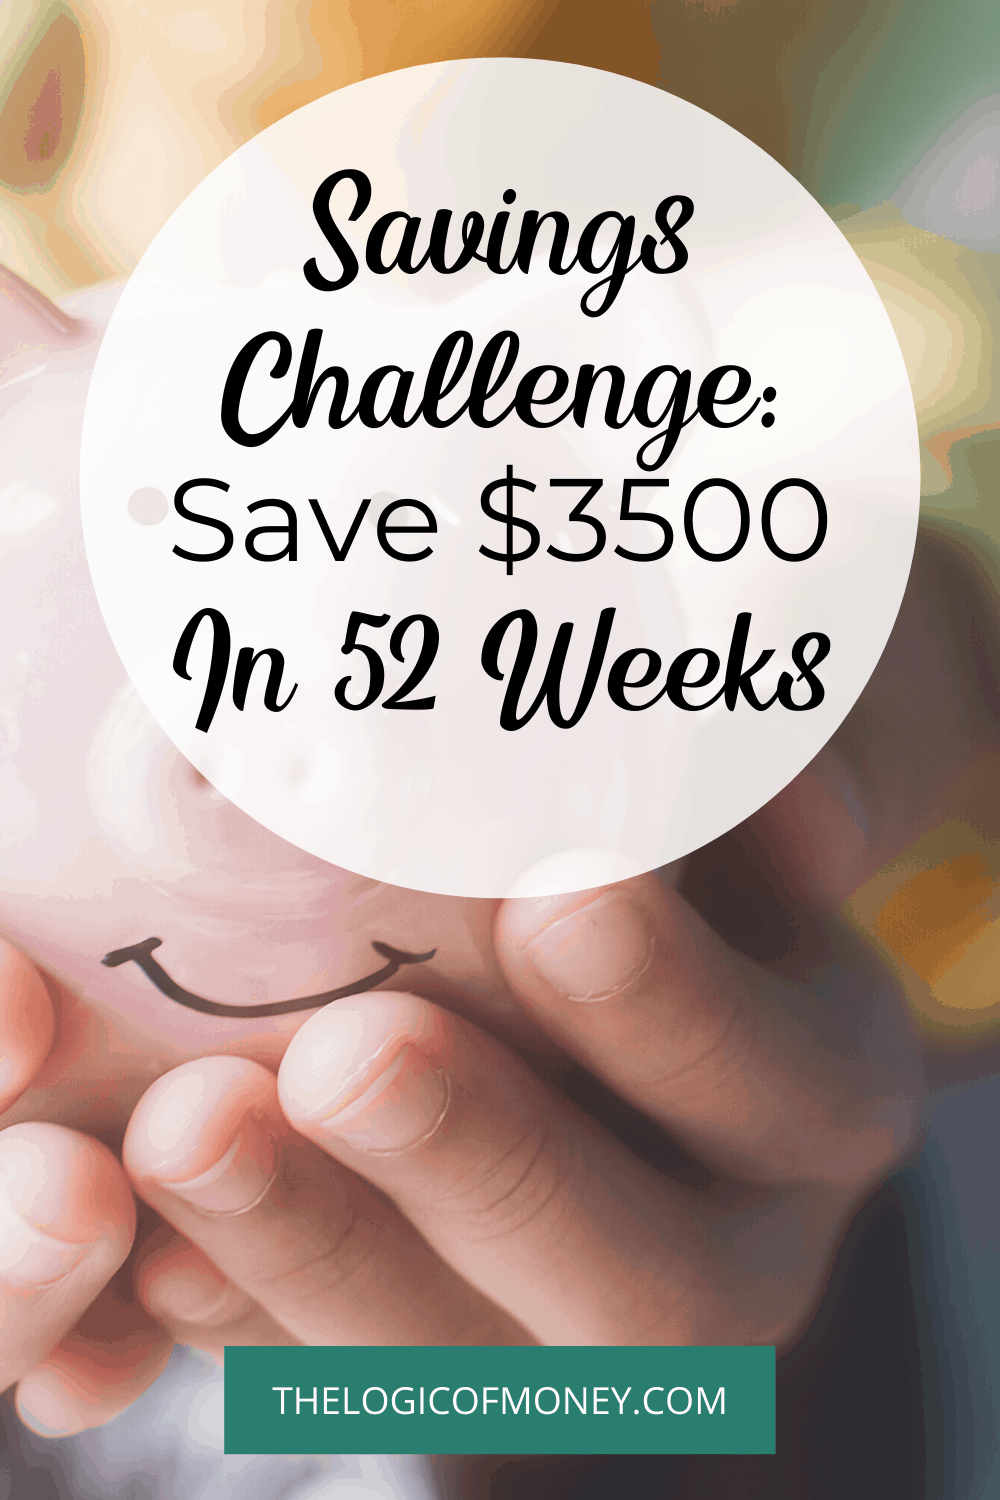 Savings Challenge Save 3500 in 52 Weeks